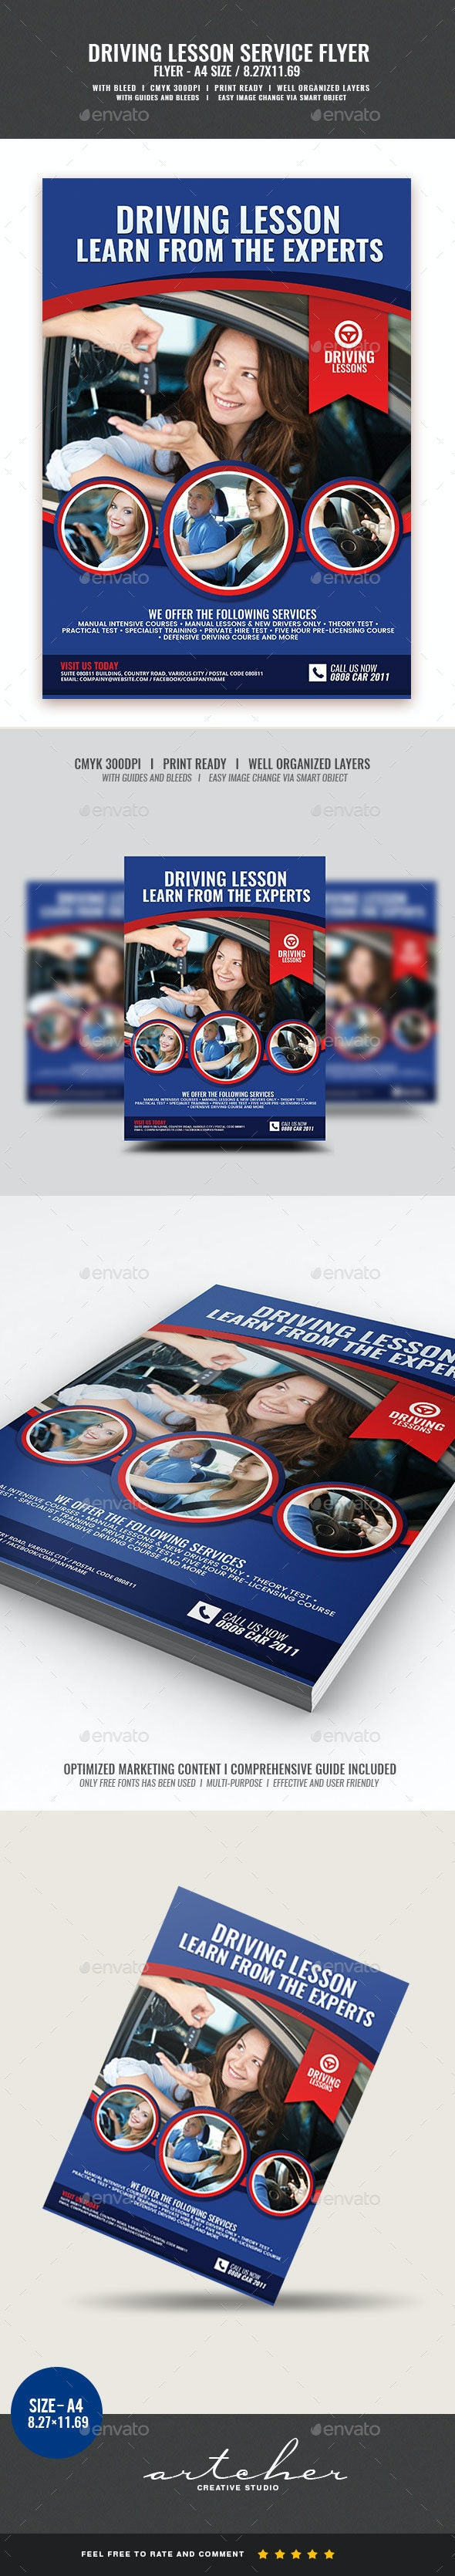 Driving Lesson Services Flyer - Corporate Flyers